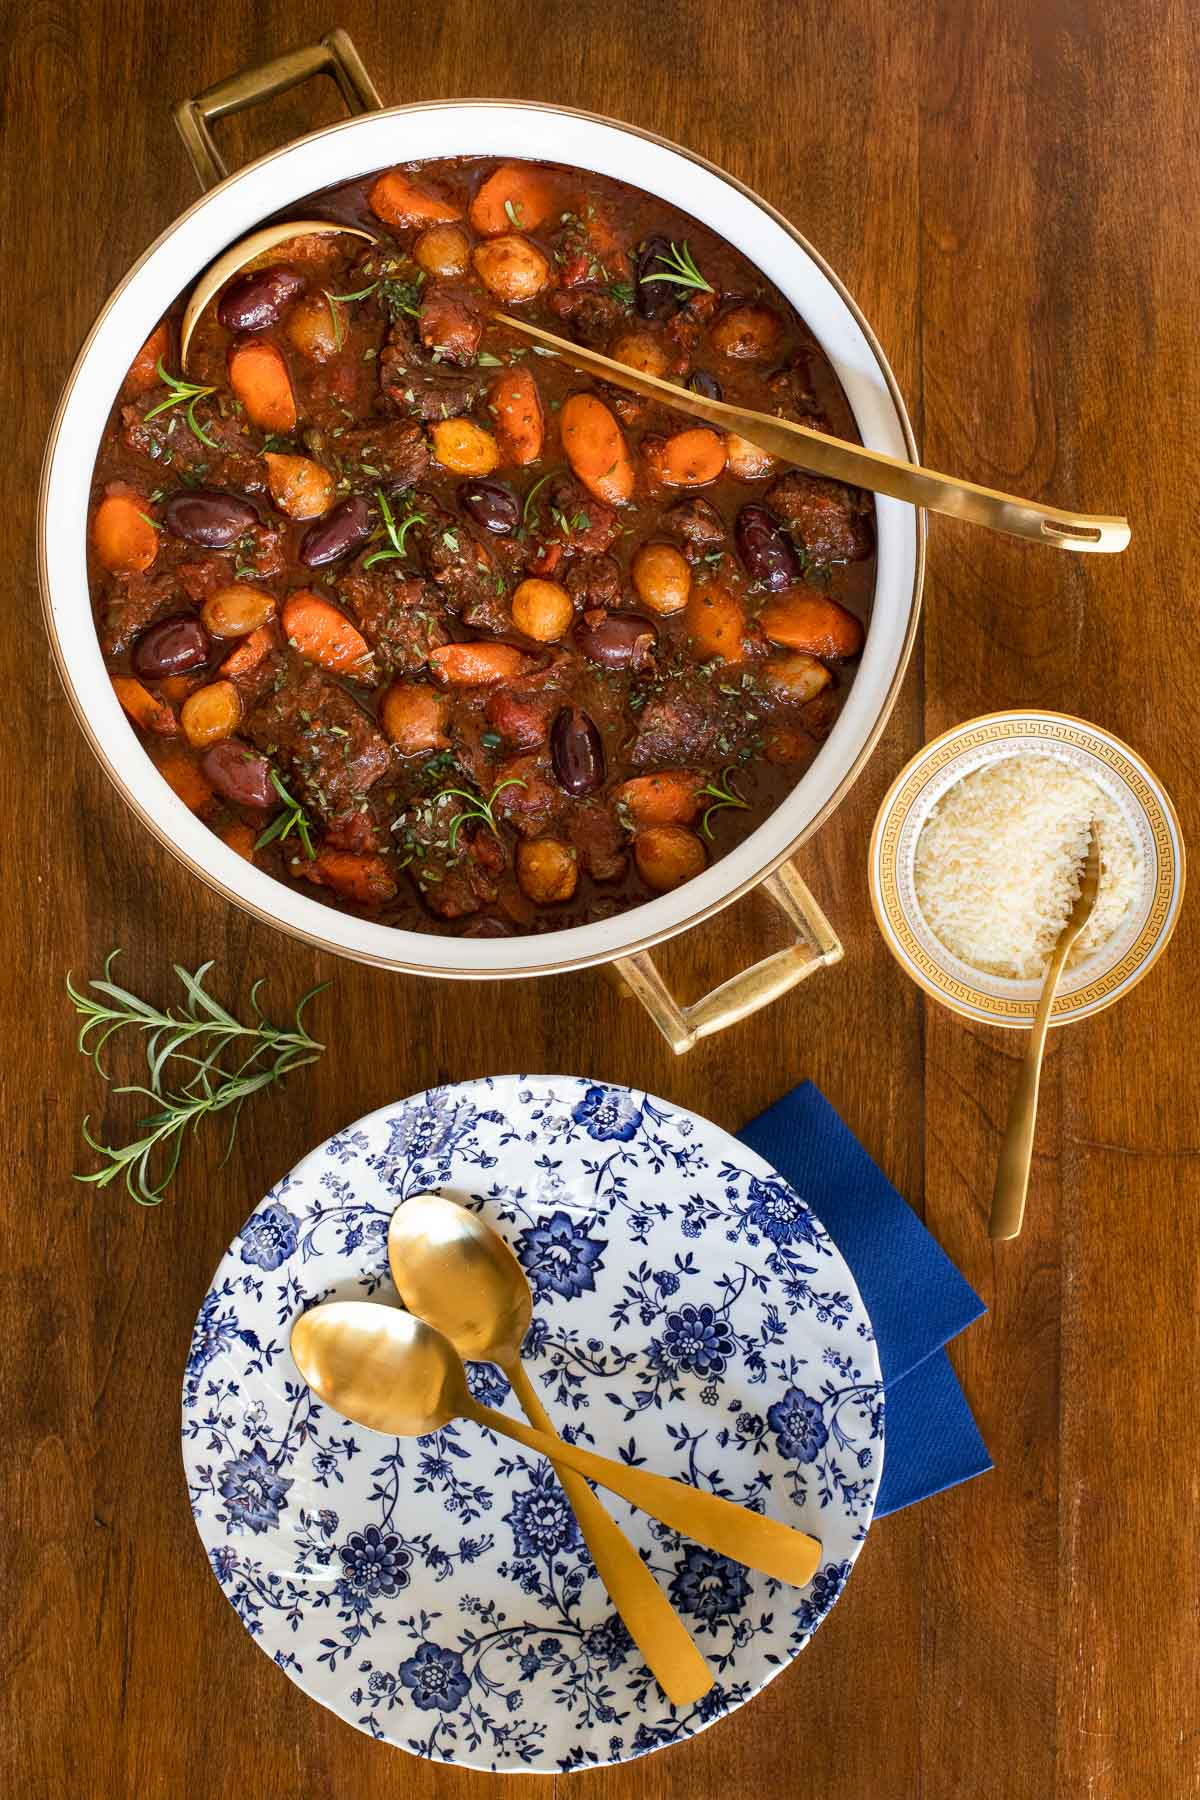 Overhead vertical photo of a pot of Slow Braised Italian Beef Stew on a wood table.